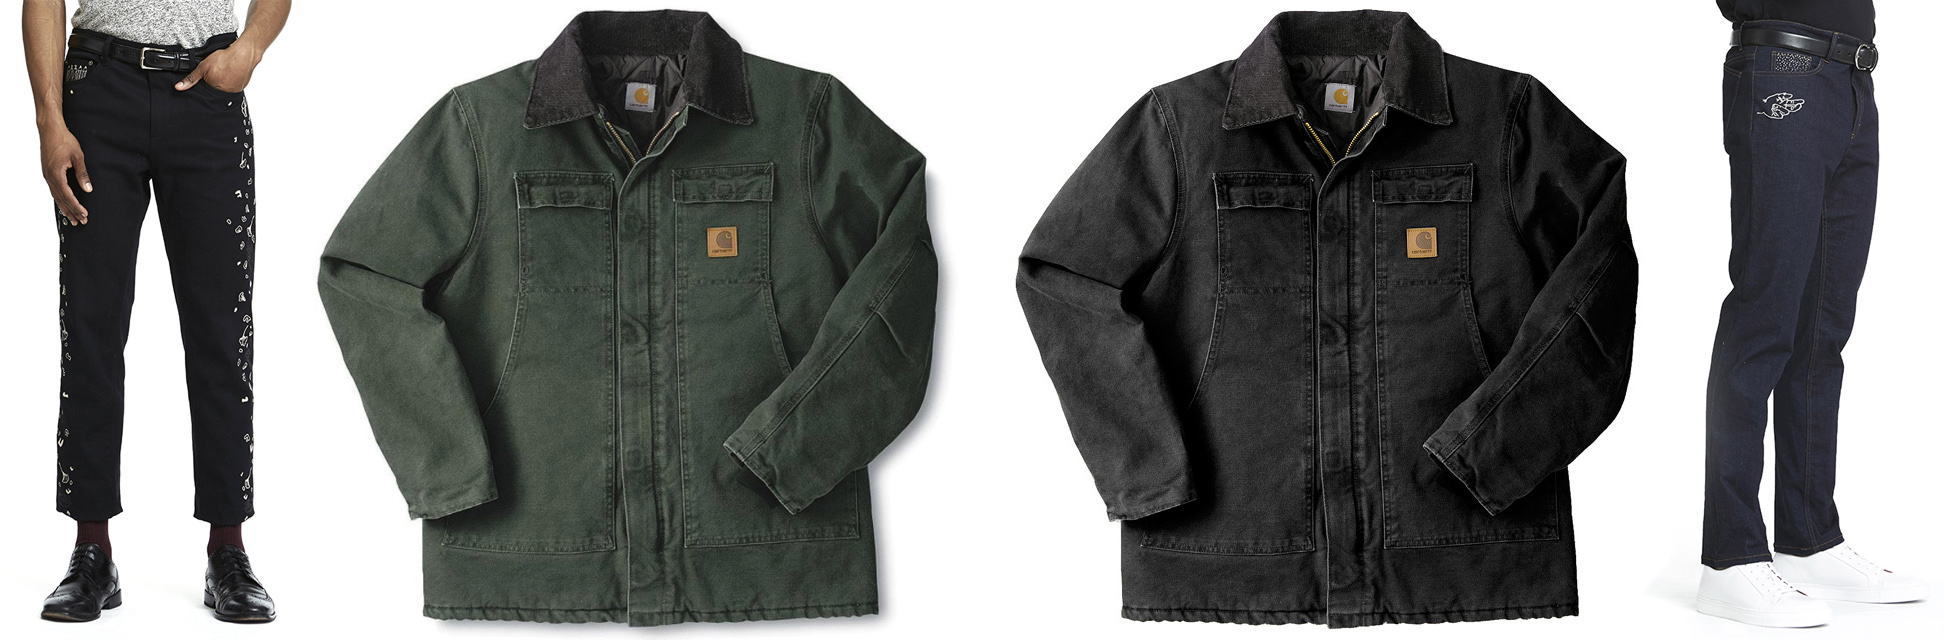 """""""Maupassant"""" Jeans, Carhartt Sandstone Traditional Coat in Moss and Black ($129.99), """"Pascal"""" Jeans."""